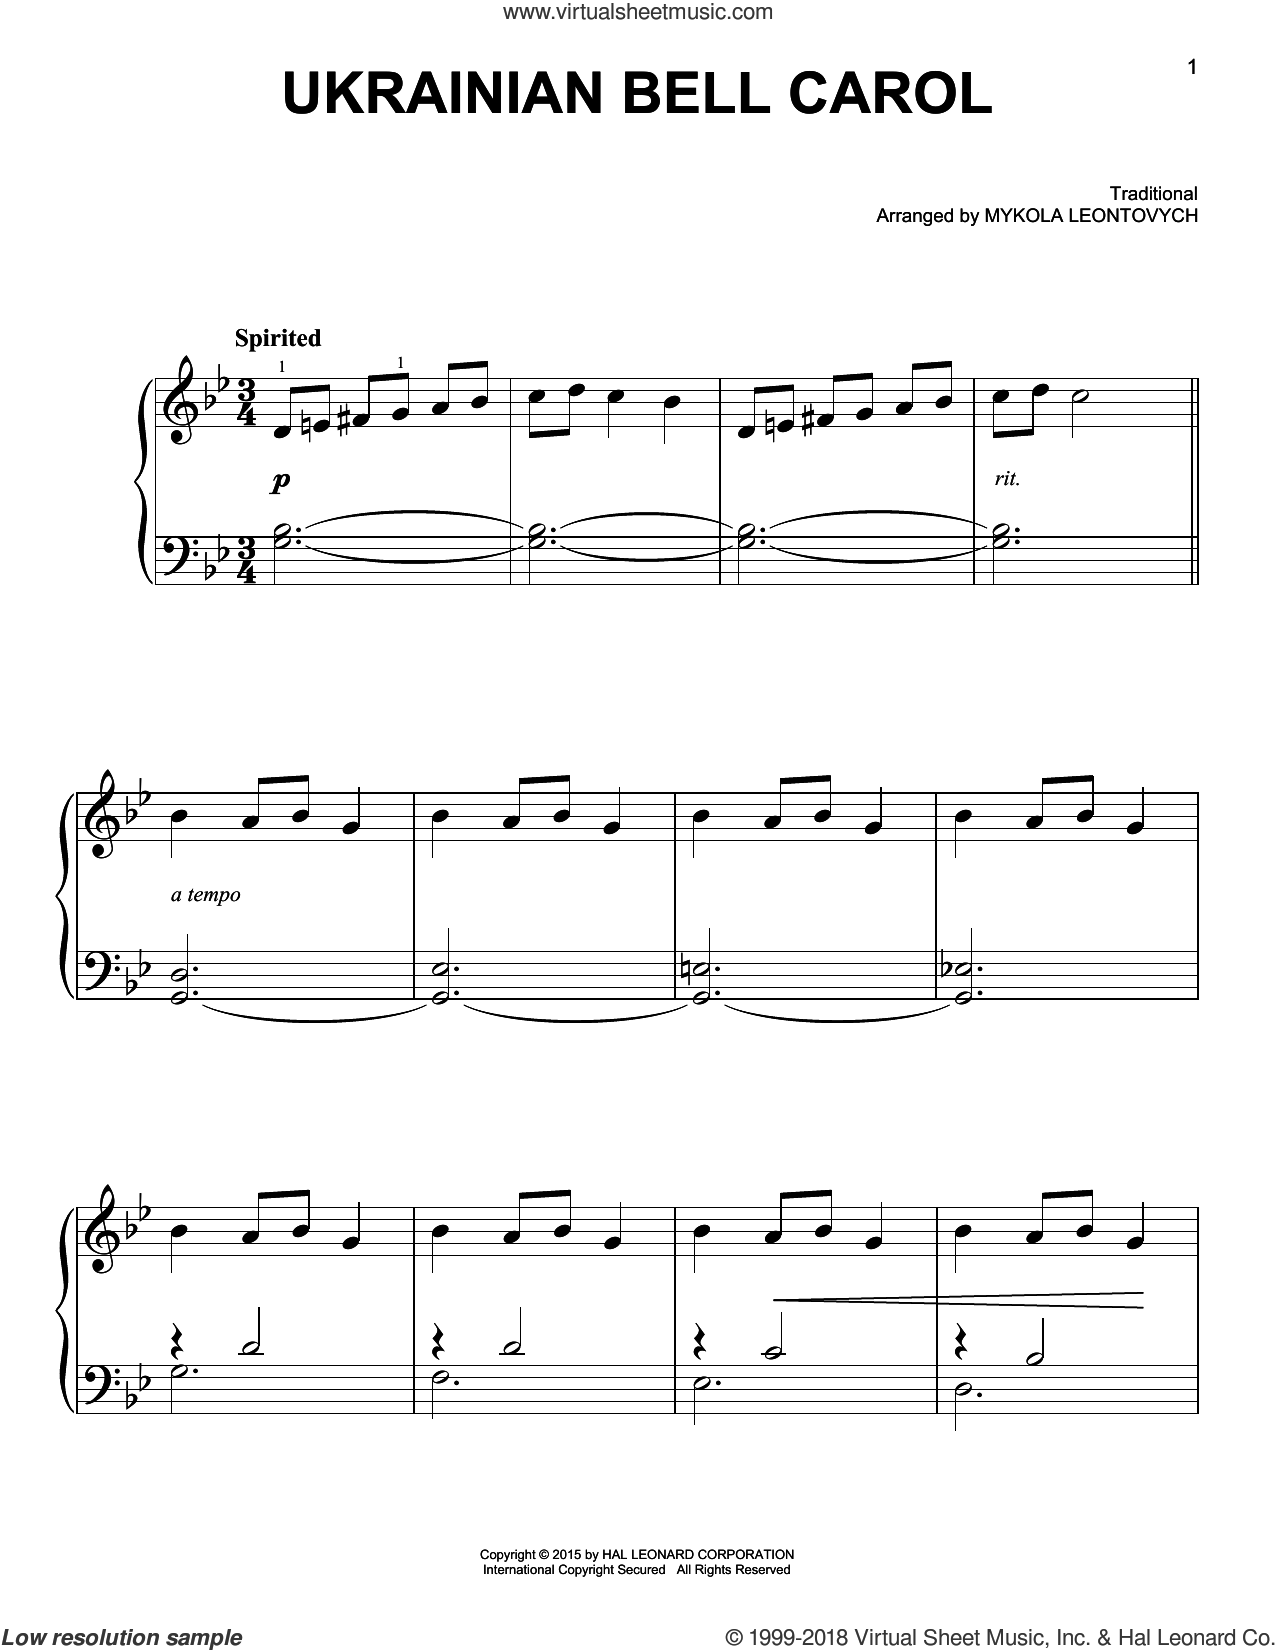 Ukrainian Bell Carol sheet music for piano solo by Mykola Leontovych, beginner